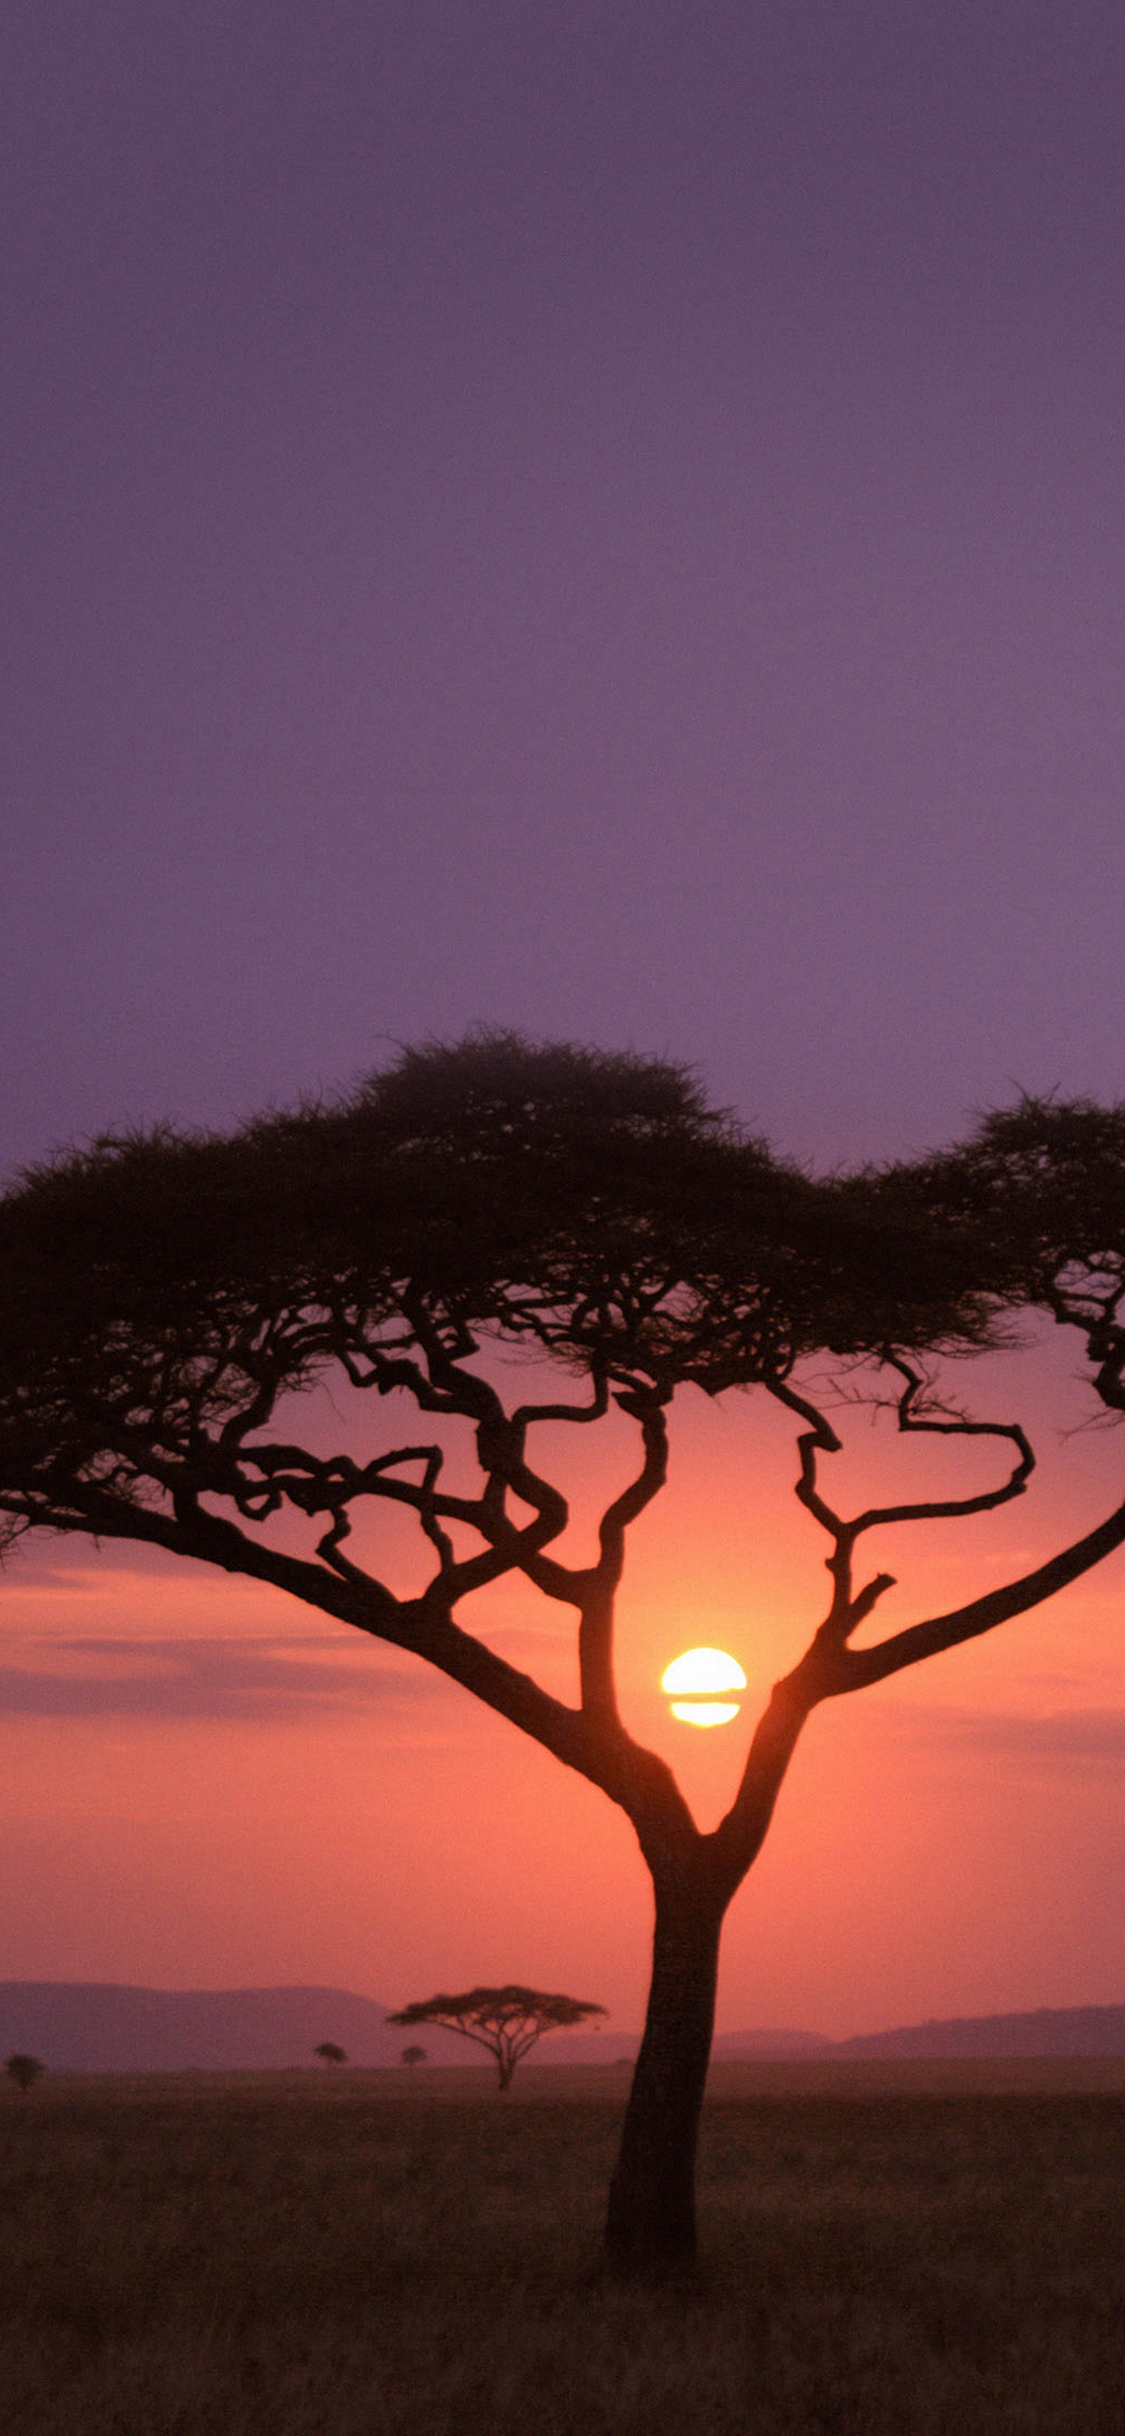 Solo Tree Safari Africa Sunset Iphone X Wallpapers Free Download